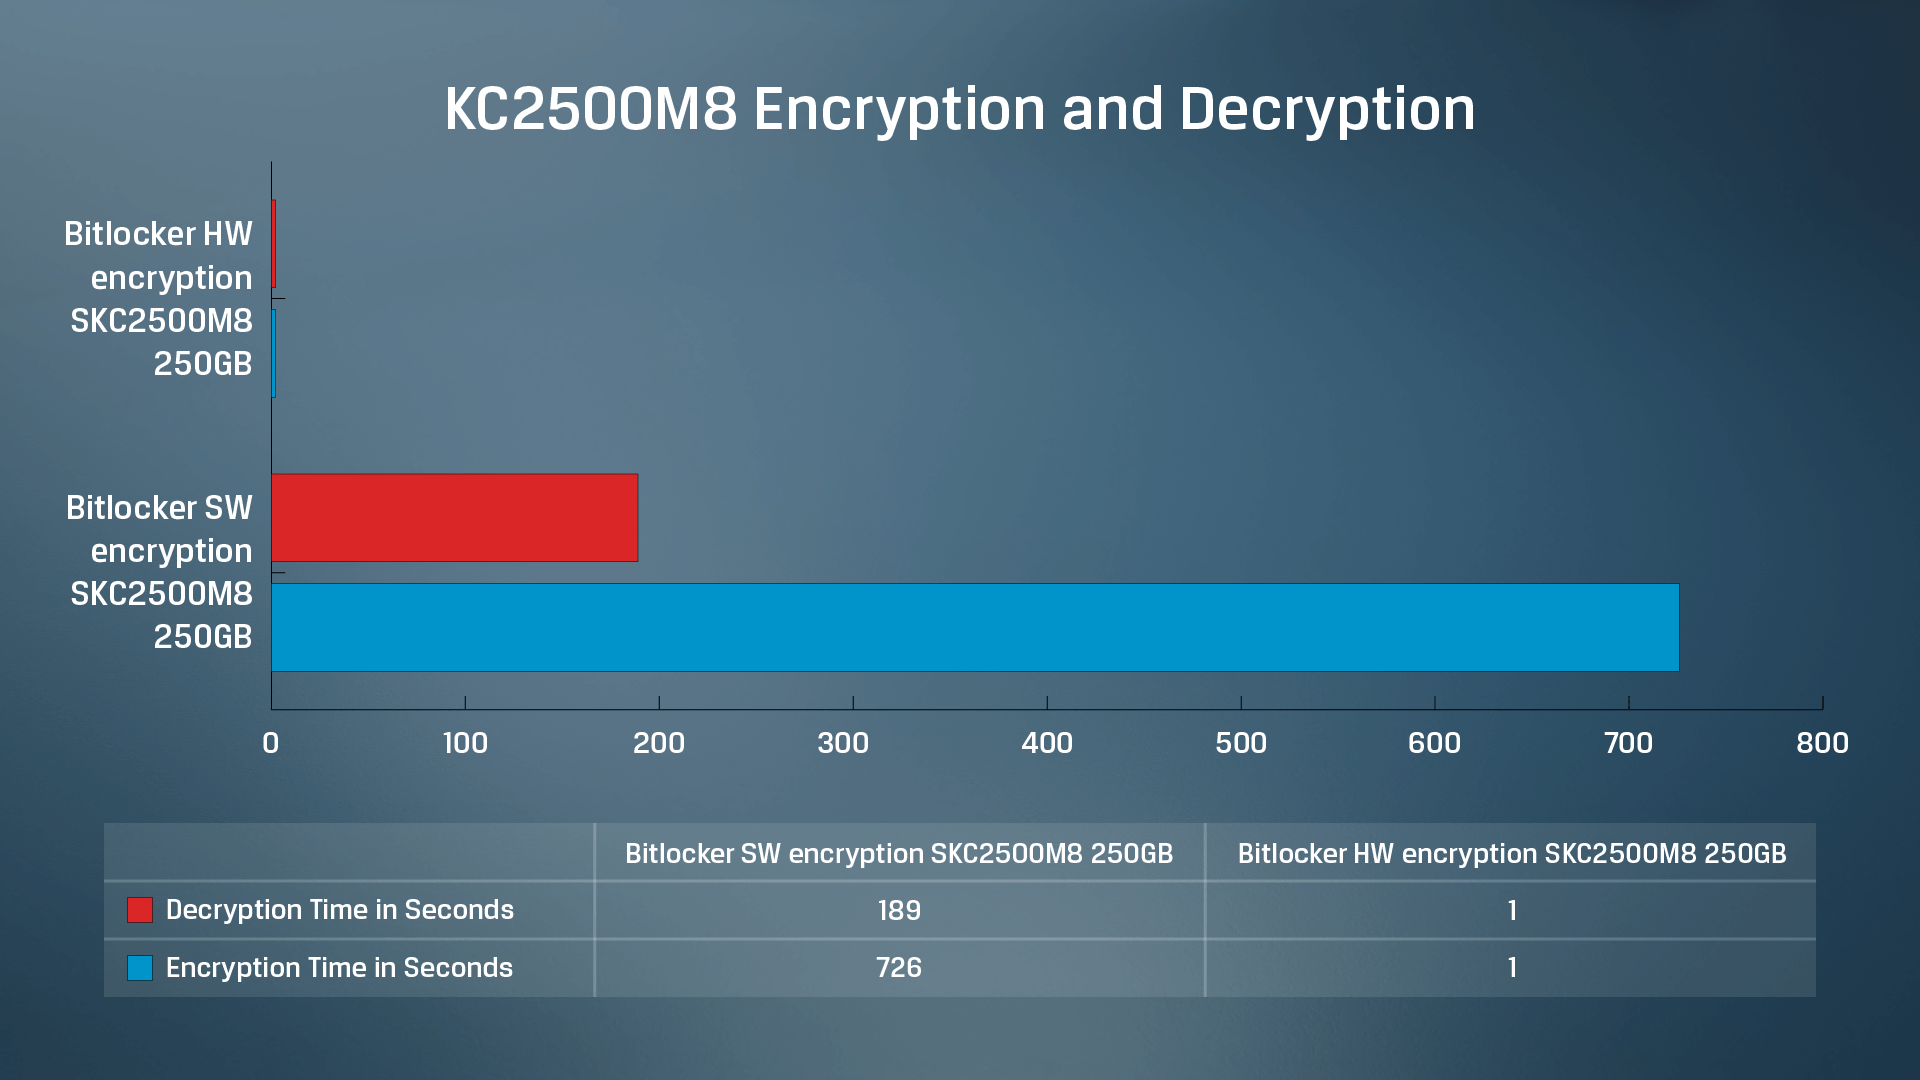 Kingston KC2500 SSD software vs hardware encryption and decryption data test results